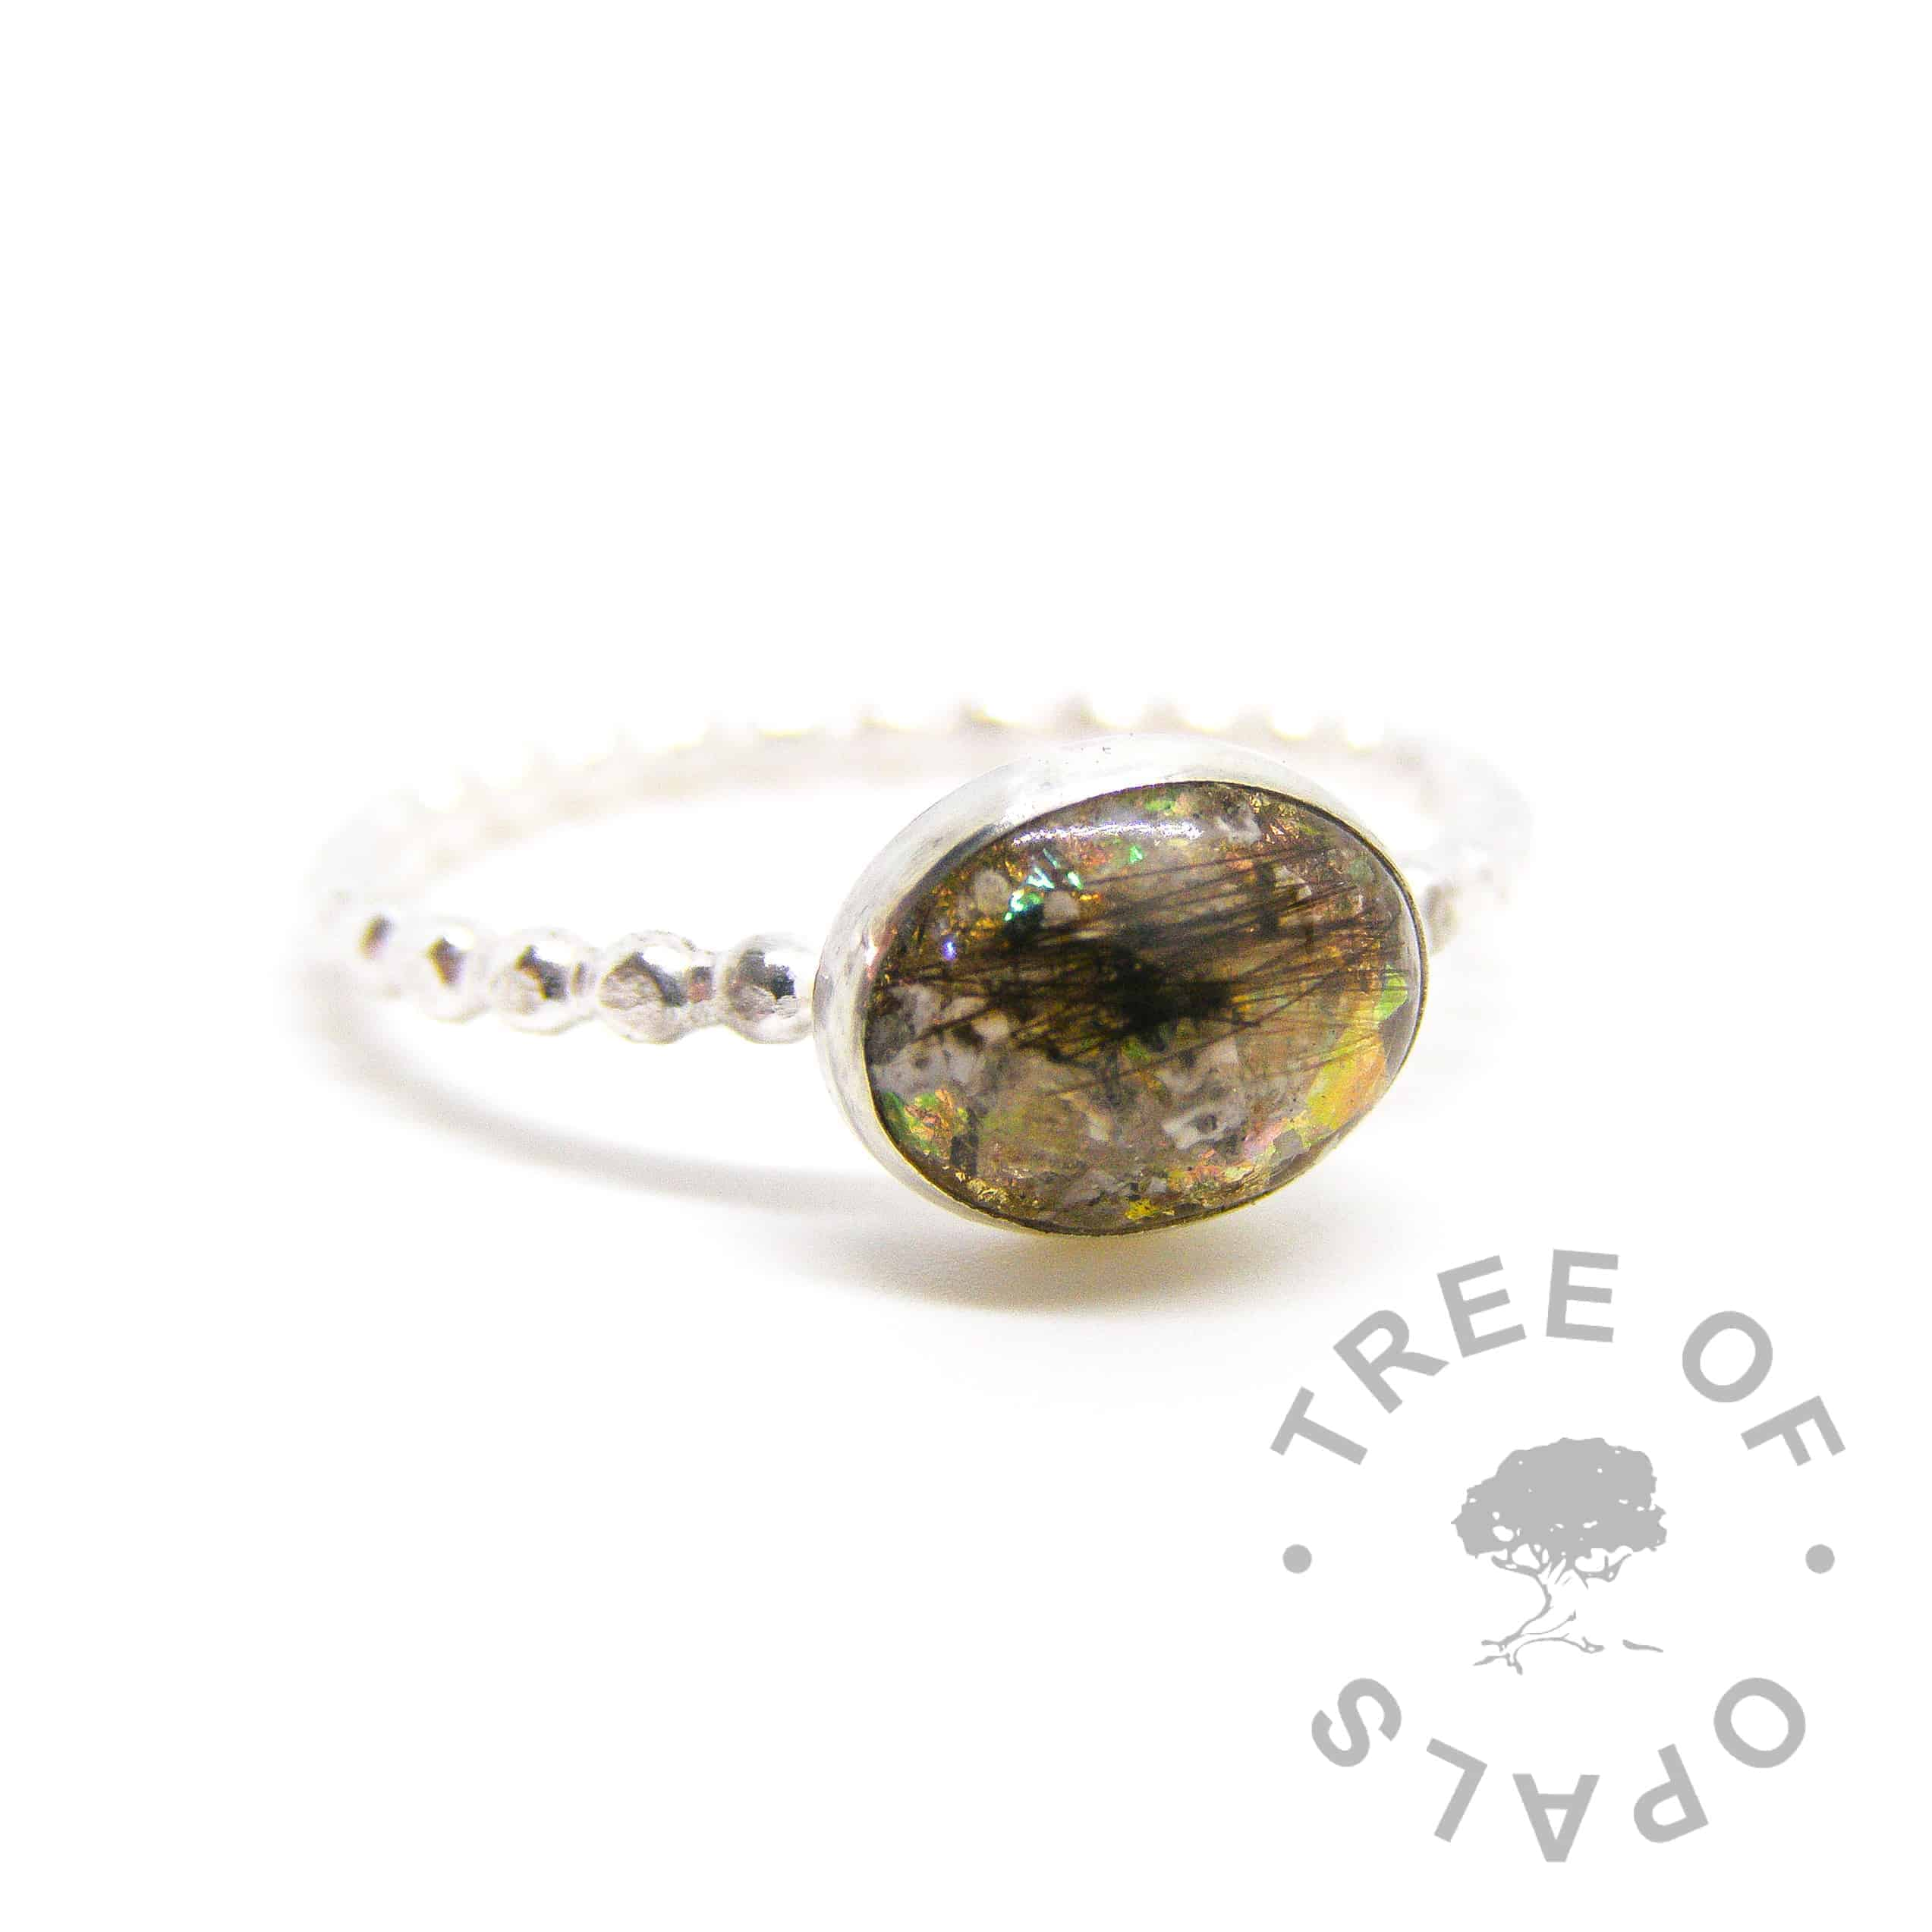 cremation ashes and hair ring in resin, white opalescent, yellow topaz November birthstone, genuine gold leaf with solid sterling silver Tree of Opals handmade bubble wire ring setting, cremation ash ring lock of hair ring